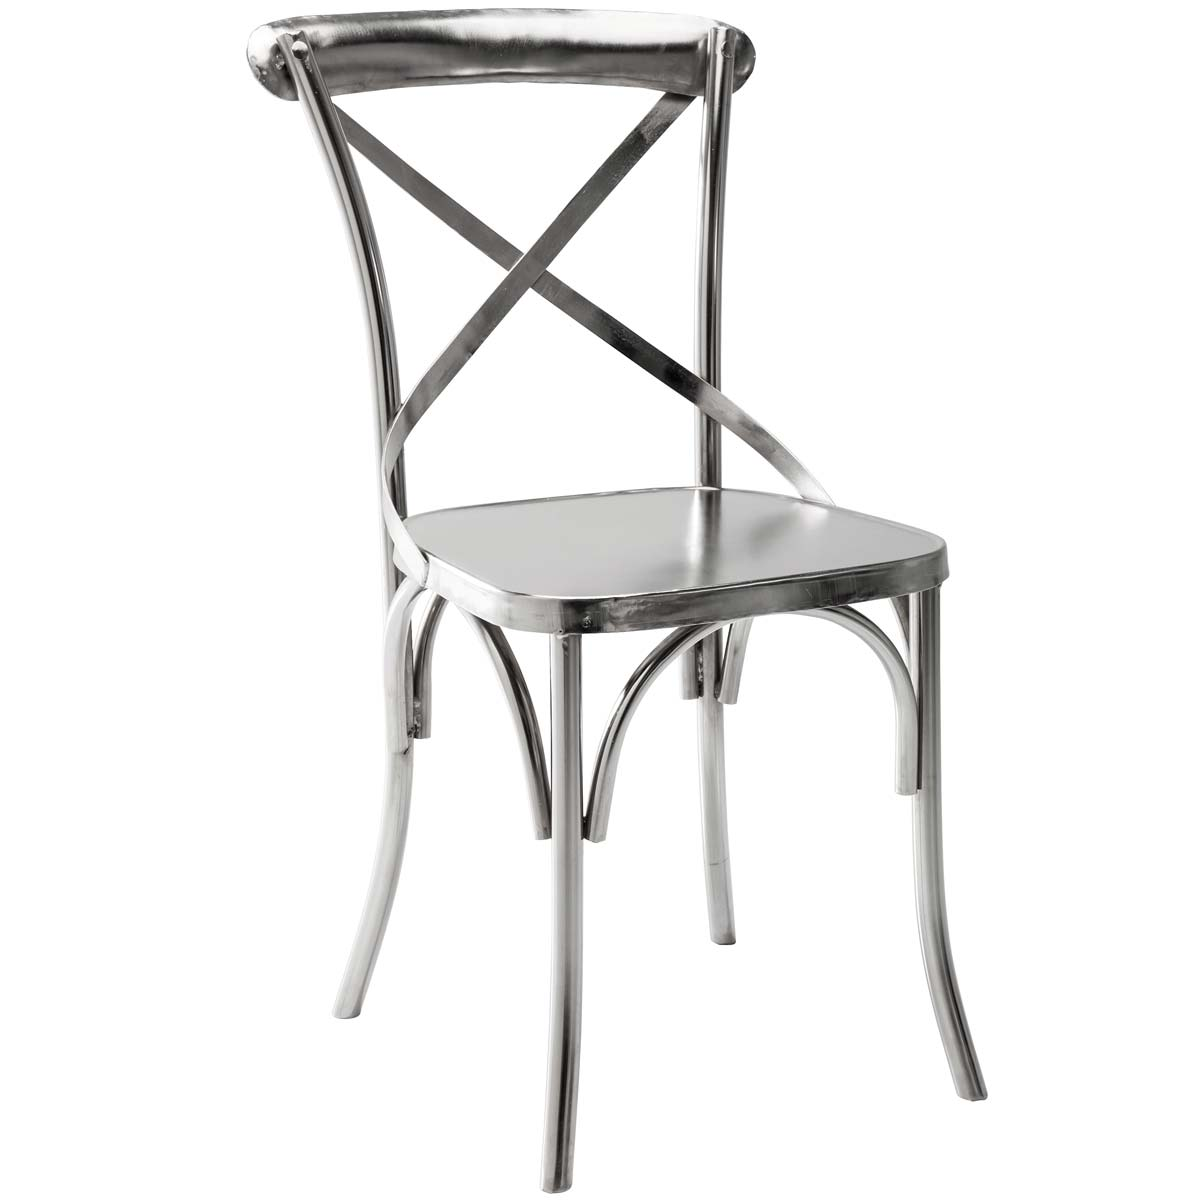 Metal chair chairs amp armchairs seating french bedroom company